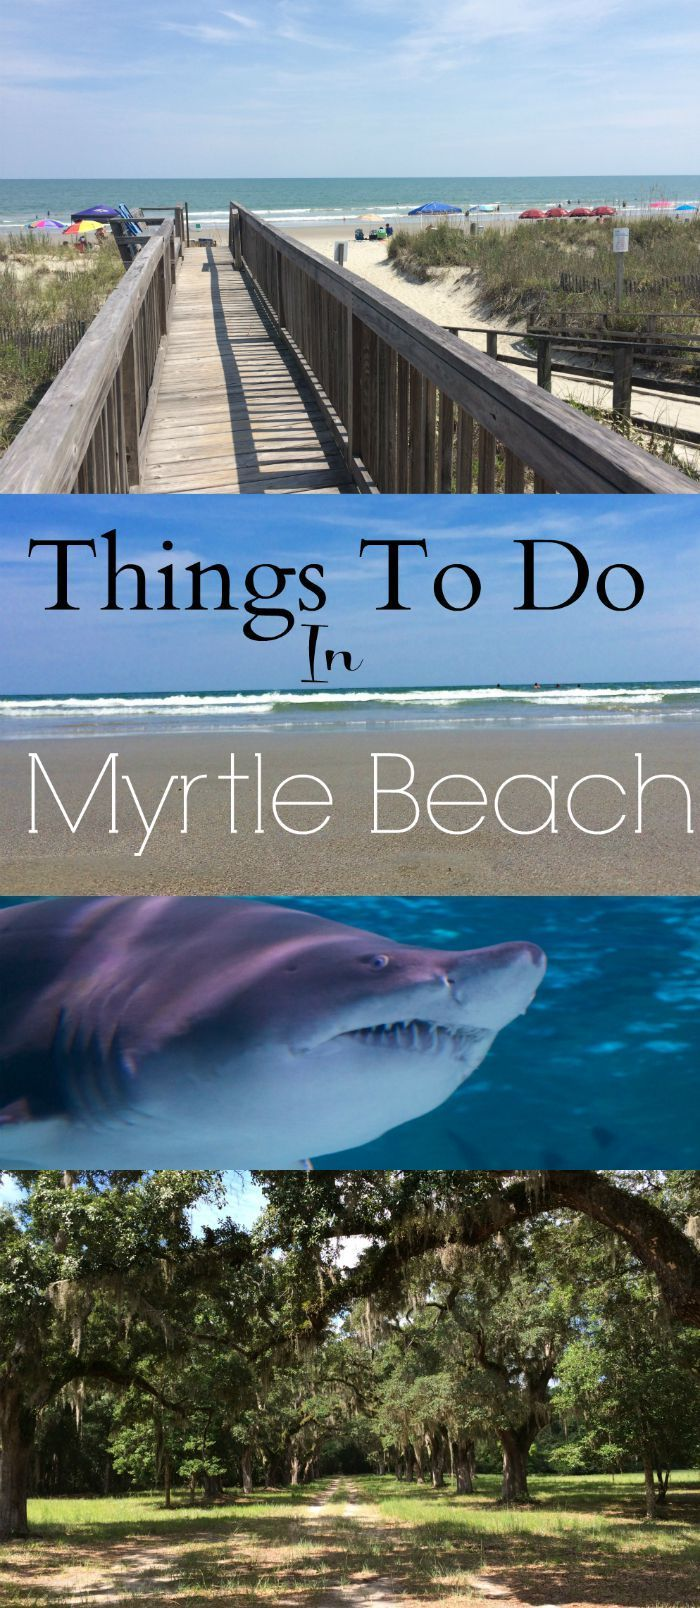 Things To Do In Myrtle Beach South Carolina Myrtle Beach Trip